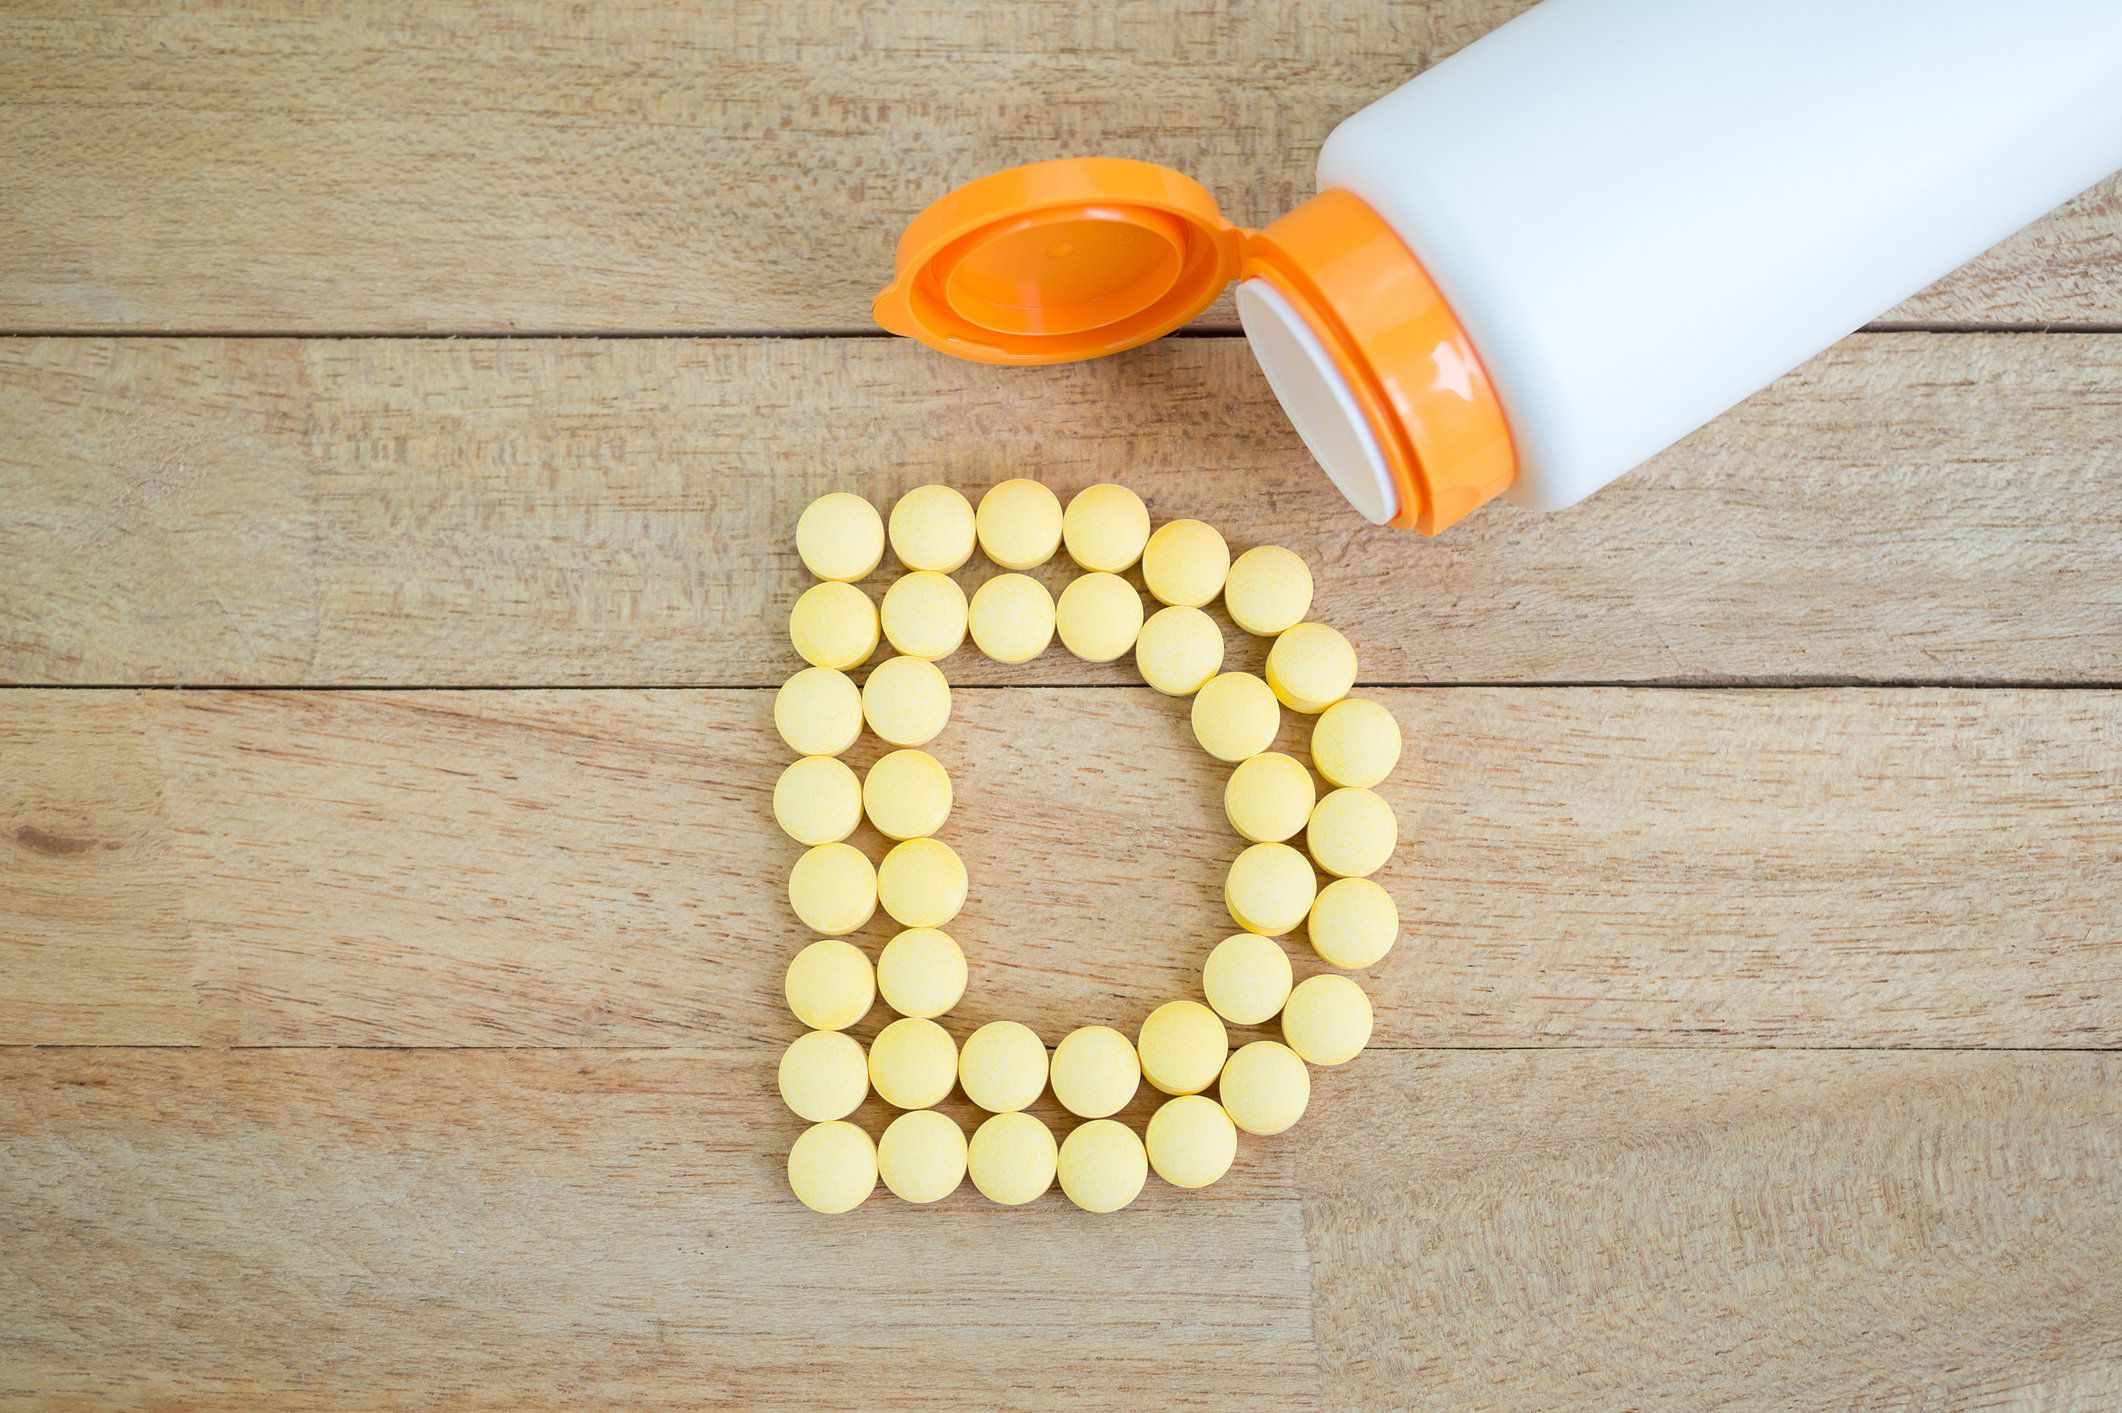 Vitamin D Supplements Don't Improve Bone Health